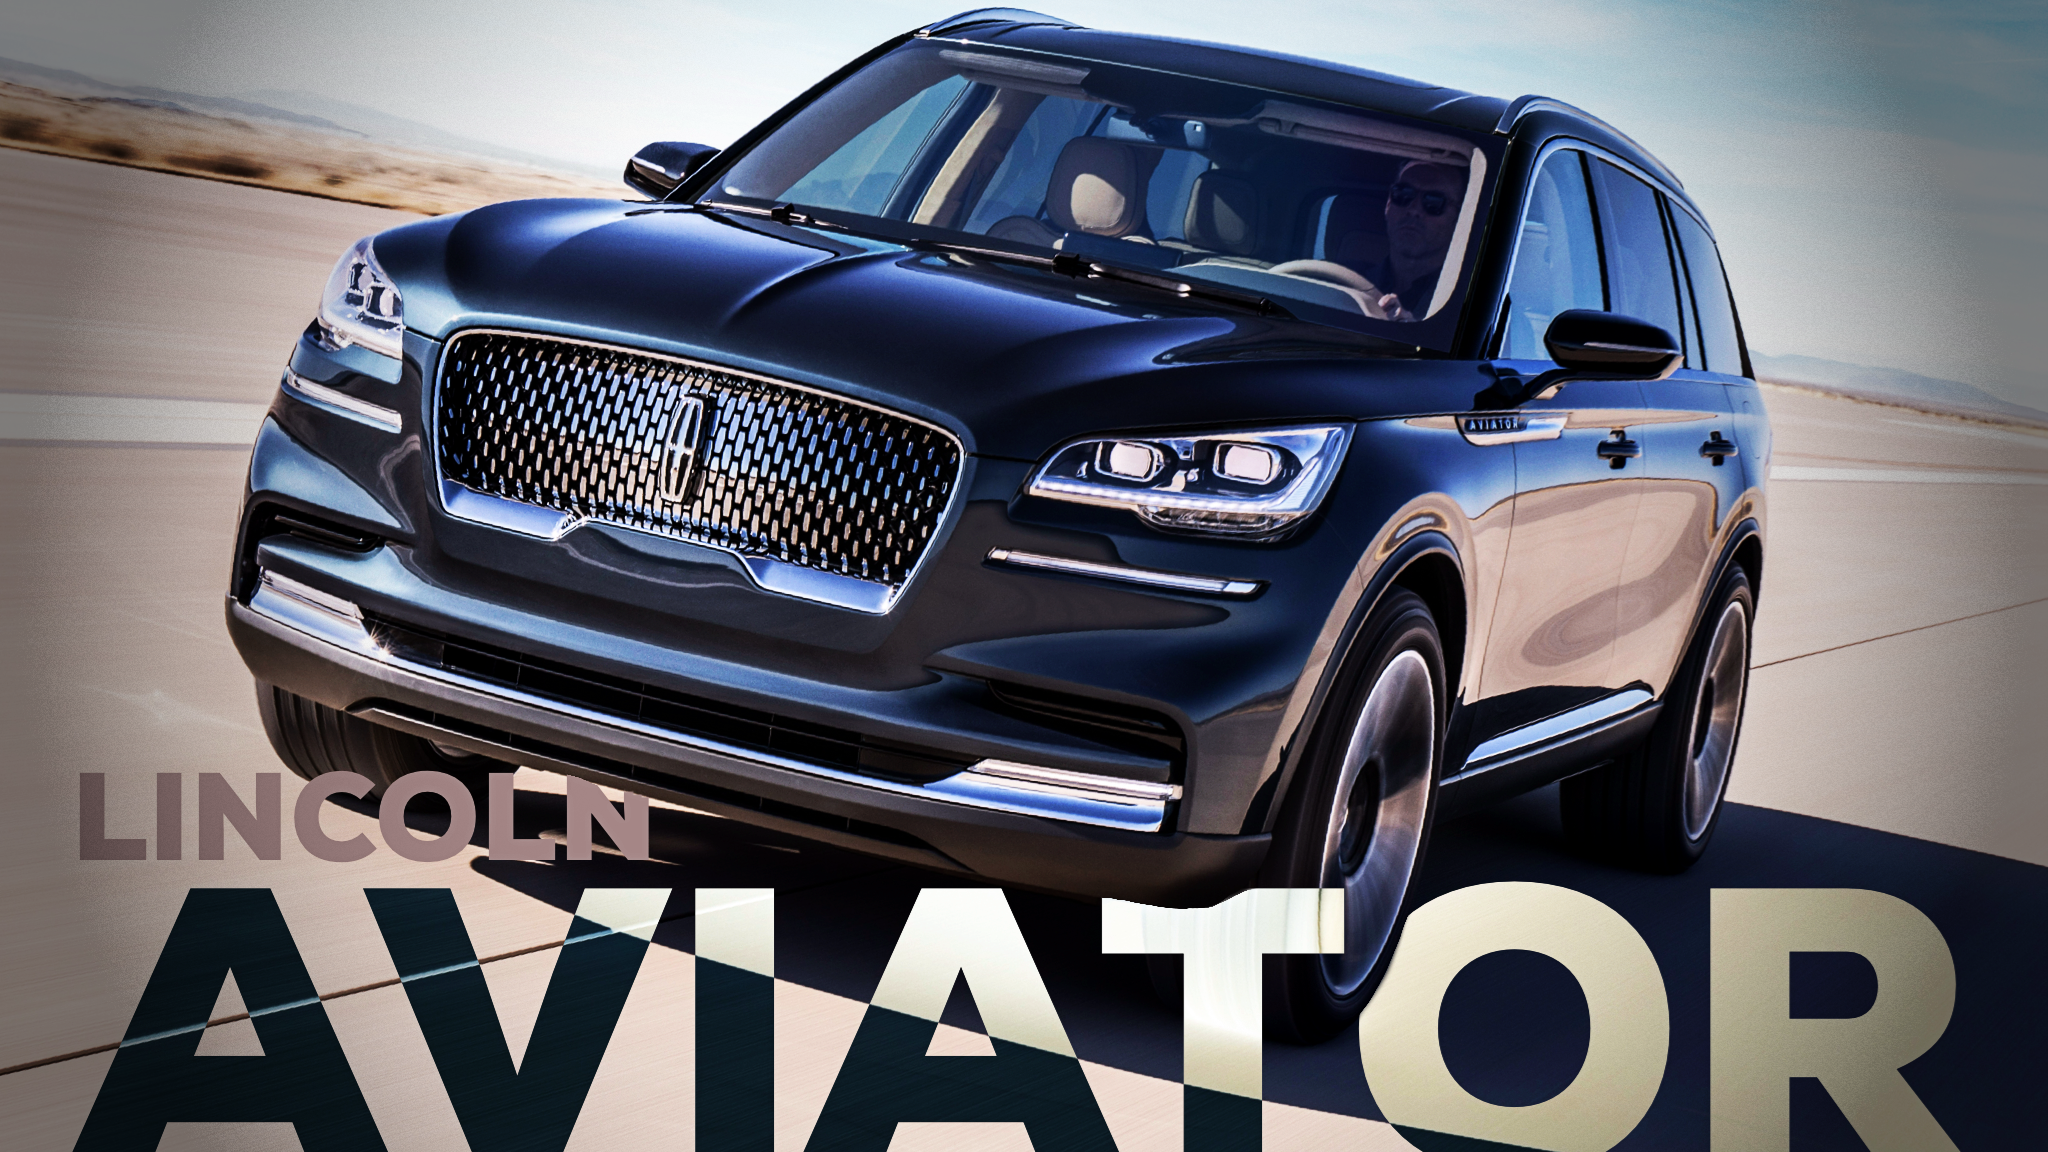 Lincoln Previews All-New Aviator In NYC, An SUV Beauty